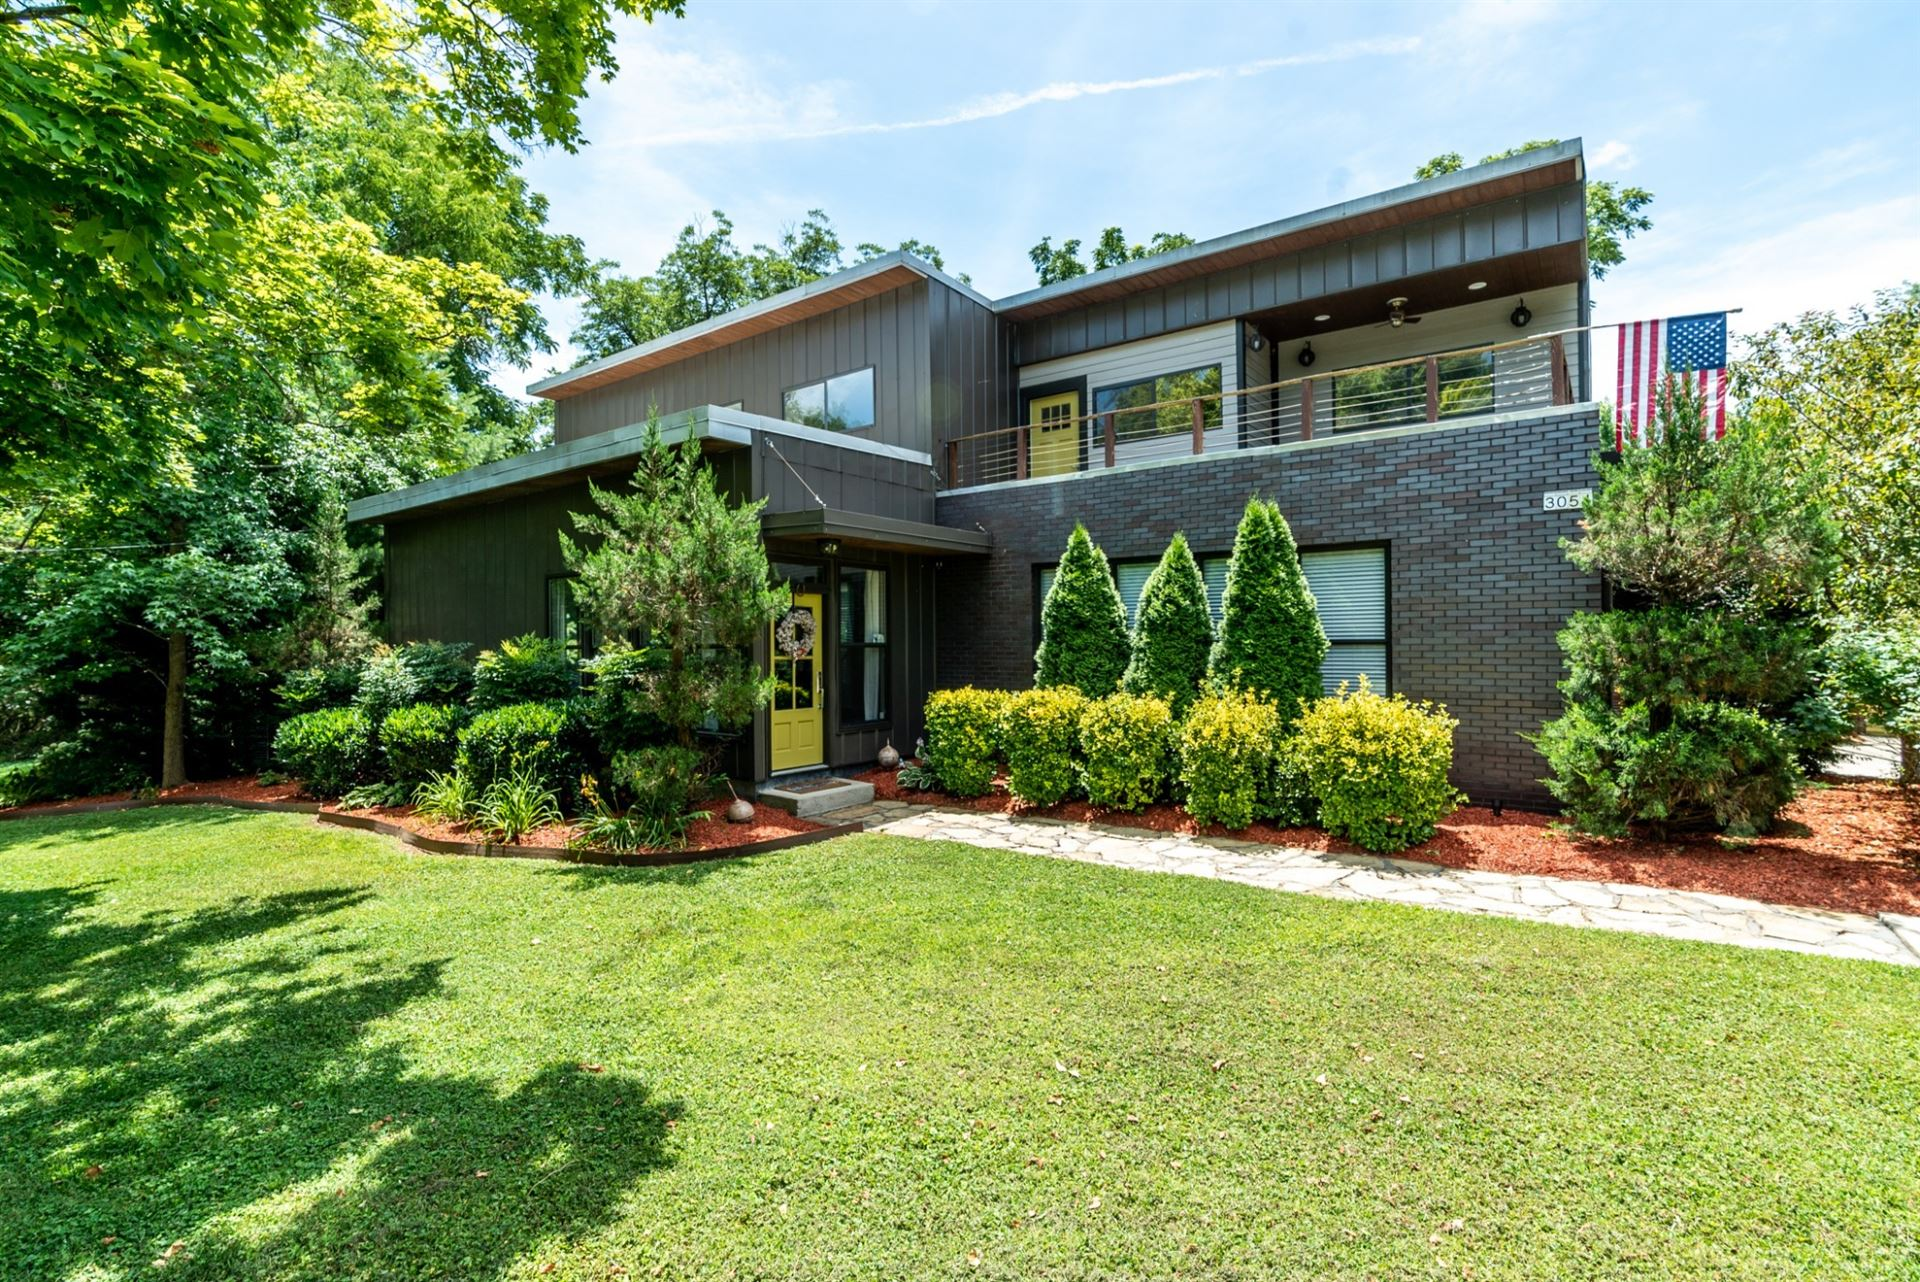 3054 Lakeshore Dr, Old Hickory, TN 37138 - MLS#: 2276647